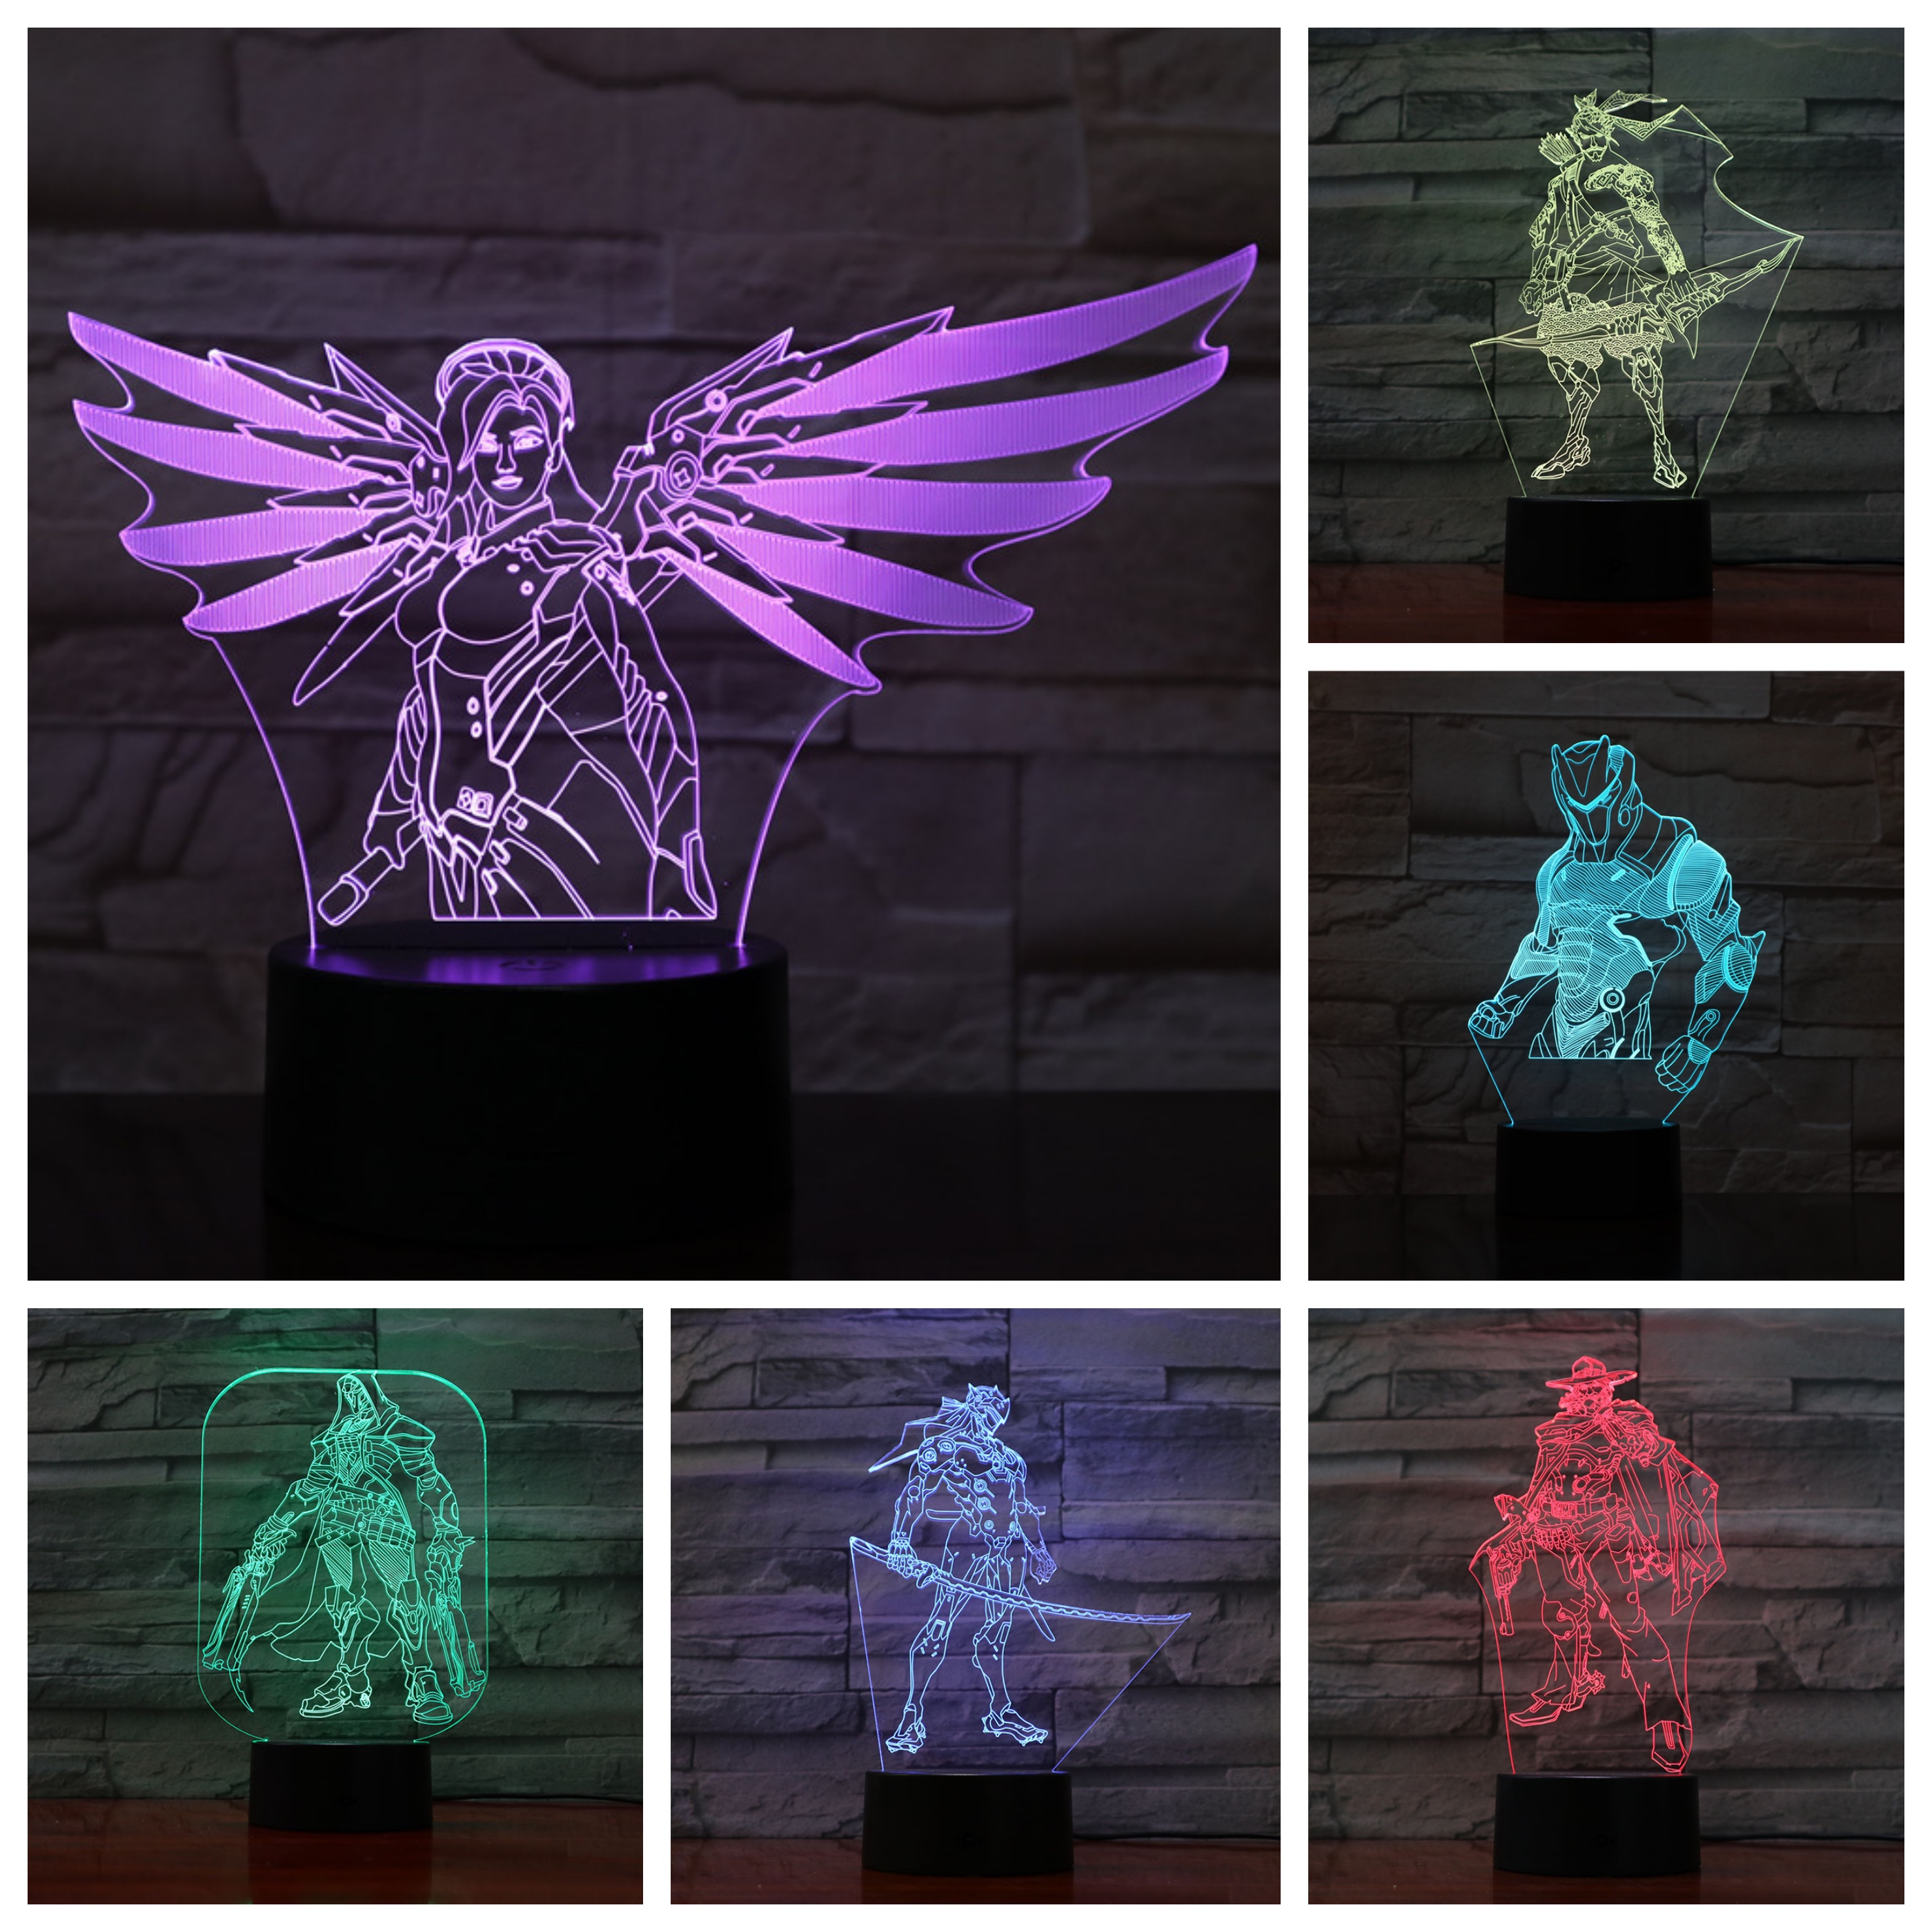 Game Overwatch 3D Lamp Table Bedroom Action Figure Decorative Lamp 7 Color Changing Dropshipping LED Night Light Home Decor